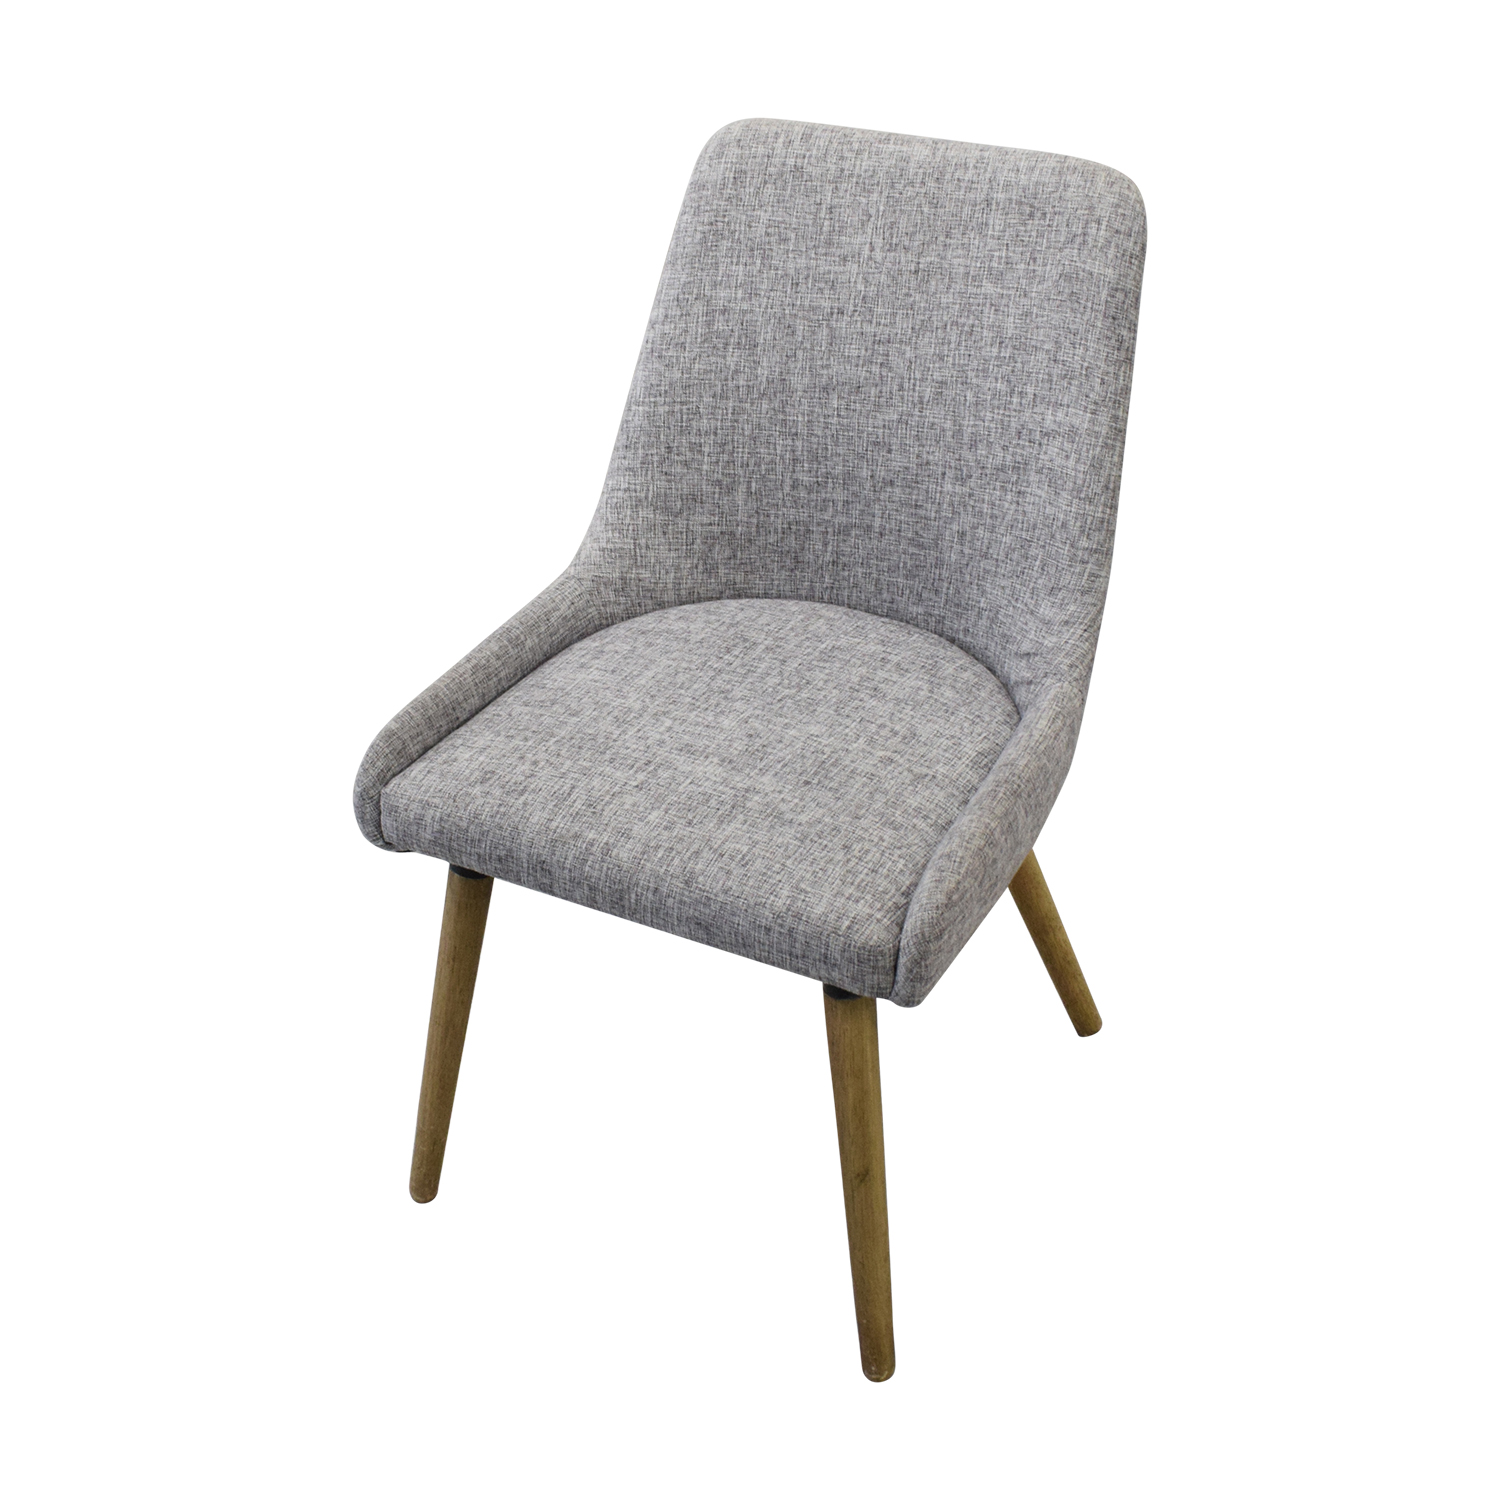 buy West Elm West Elm Mid-Century Upholstered Dining Chairs online